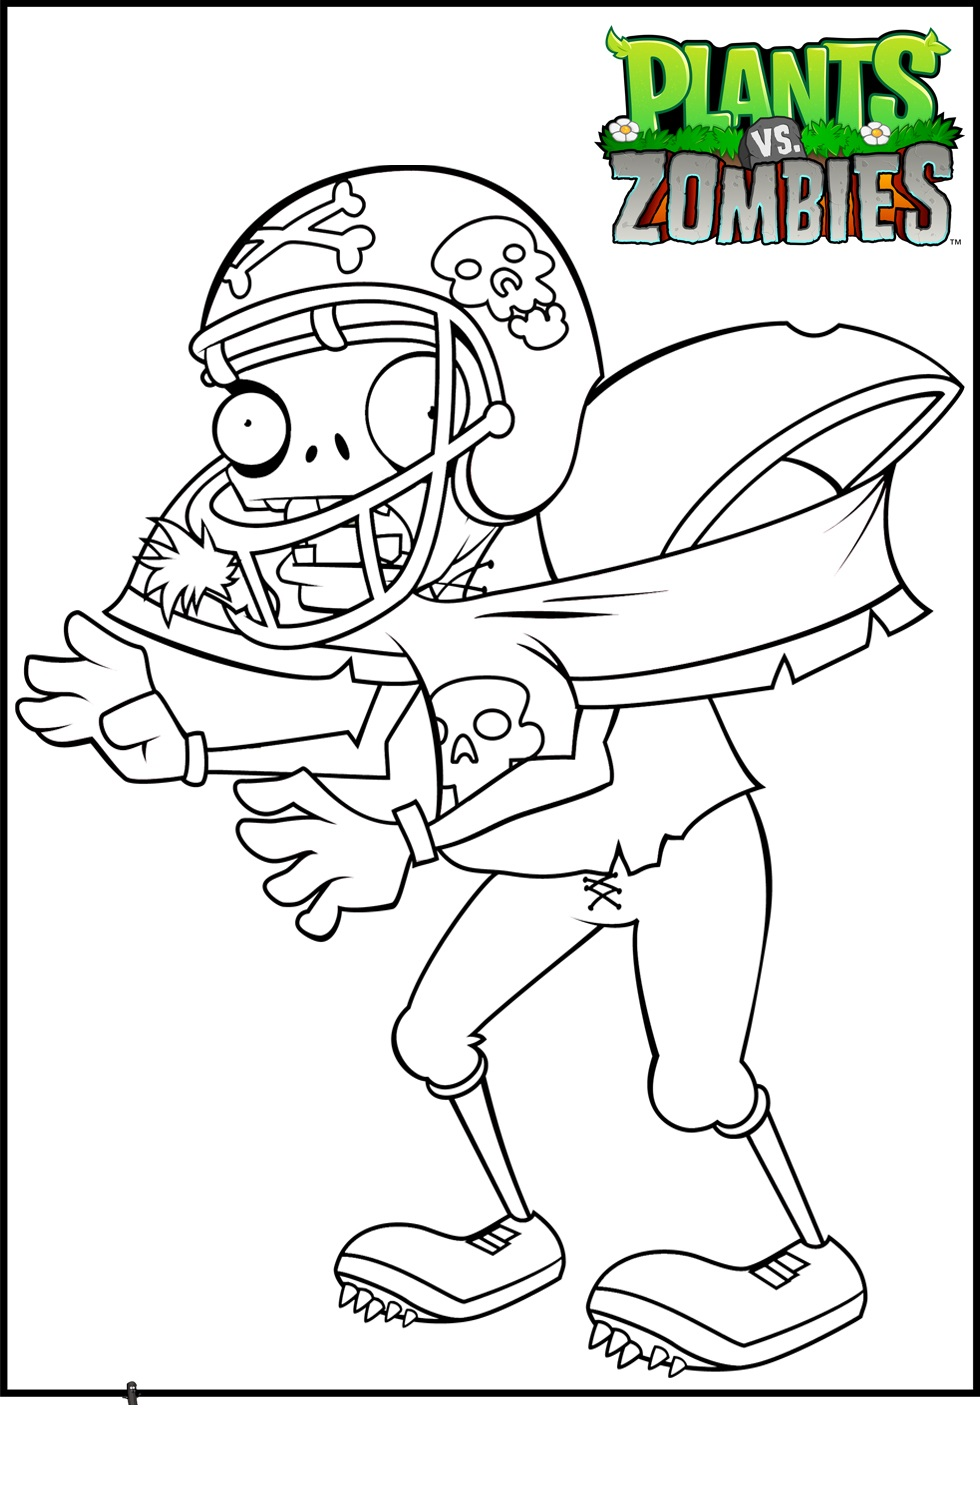 plants vs zombies coloring pages Football zomb